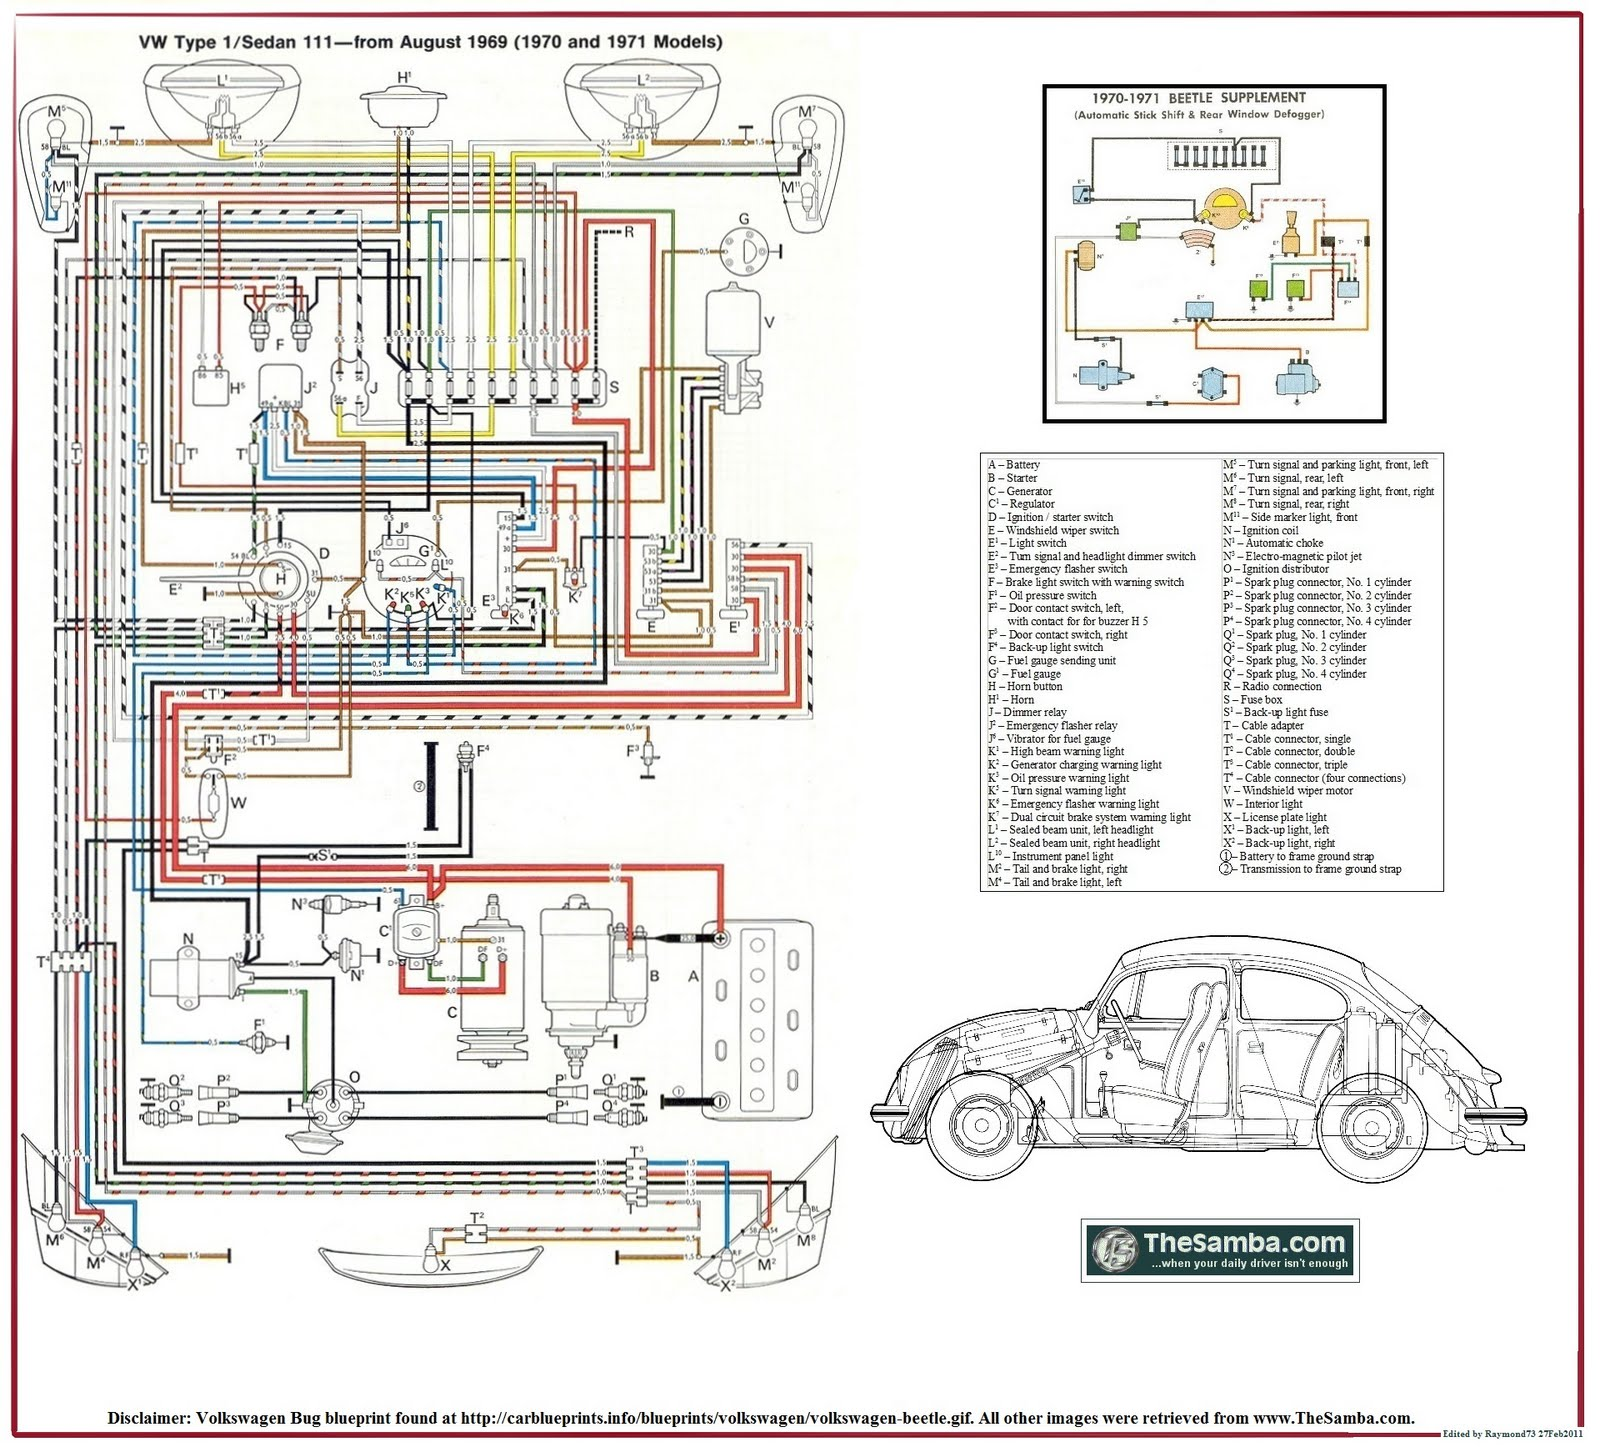 The 1966 Volkswagen Beetle Headlight Switch Wiring This Diagram